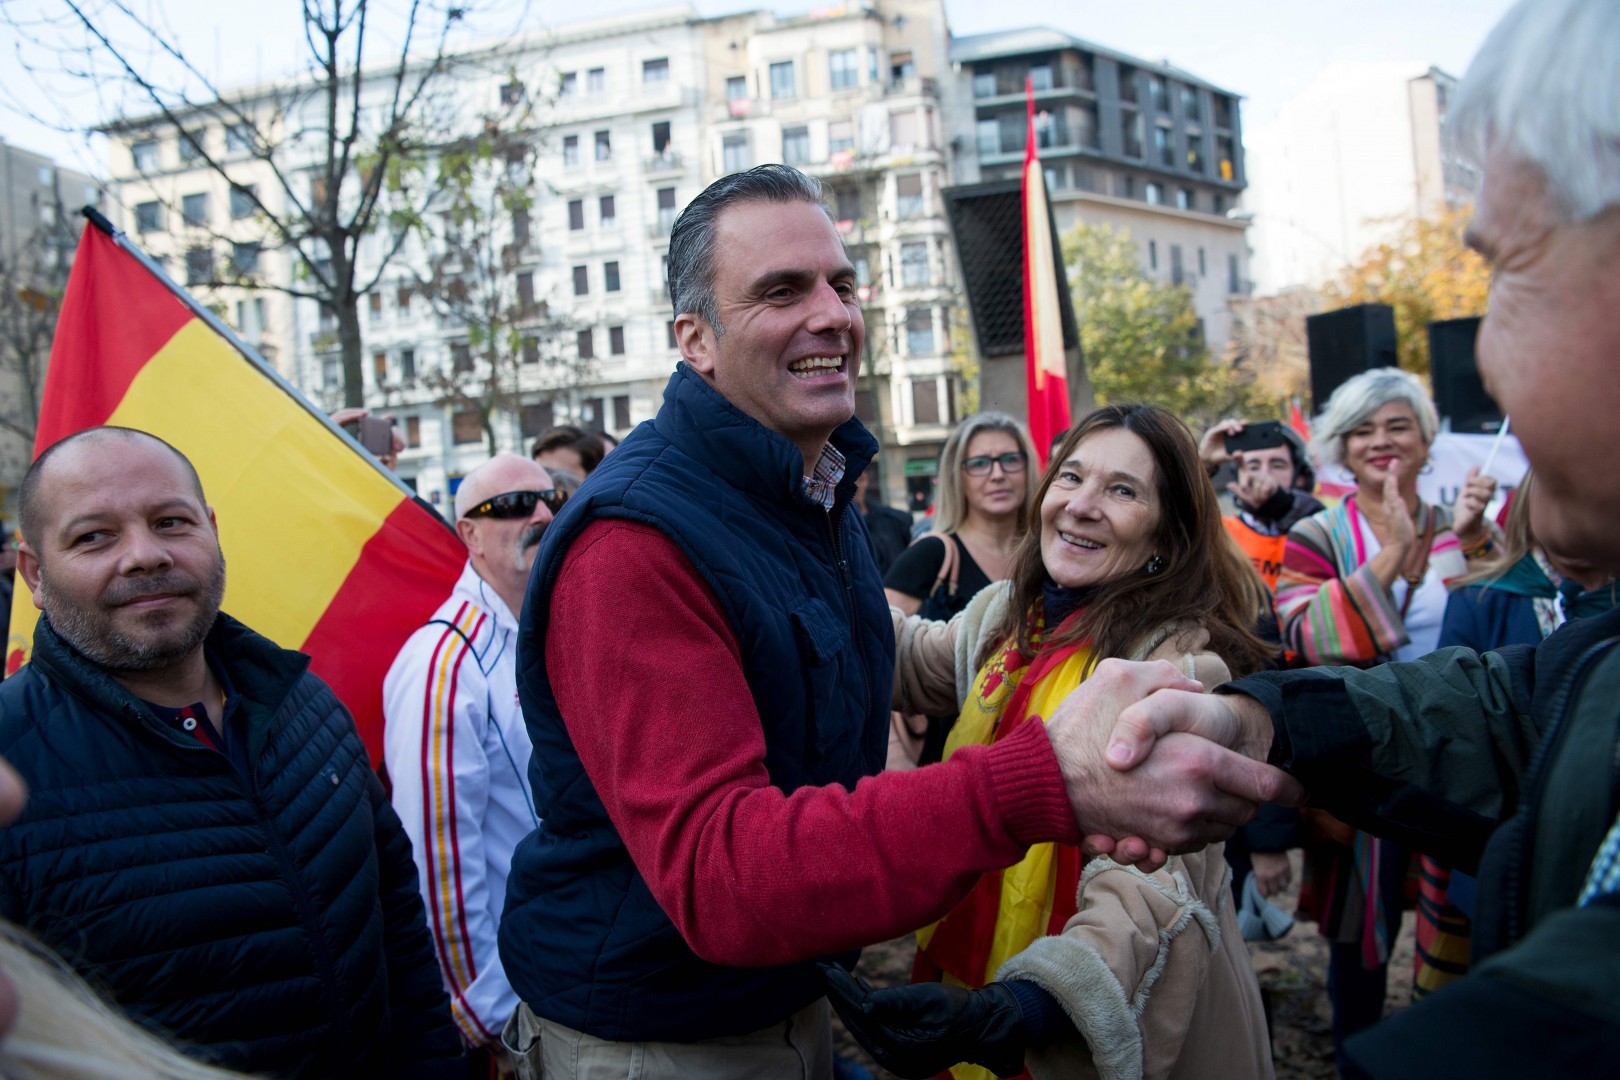 """Spain's far-right party VOX secretary general Javier Ortega Smith shakes hands with supporters during a far-right demonstration untitled """"United for the Constitution"""" in Girona on December 6, 2018,  on the 40th anniversary of the Spanish Constitution. (Photo by Josep LAGO / AFP)"""